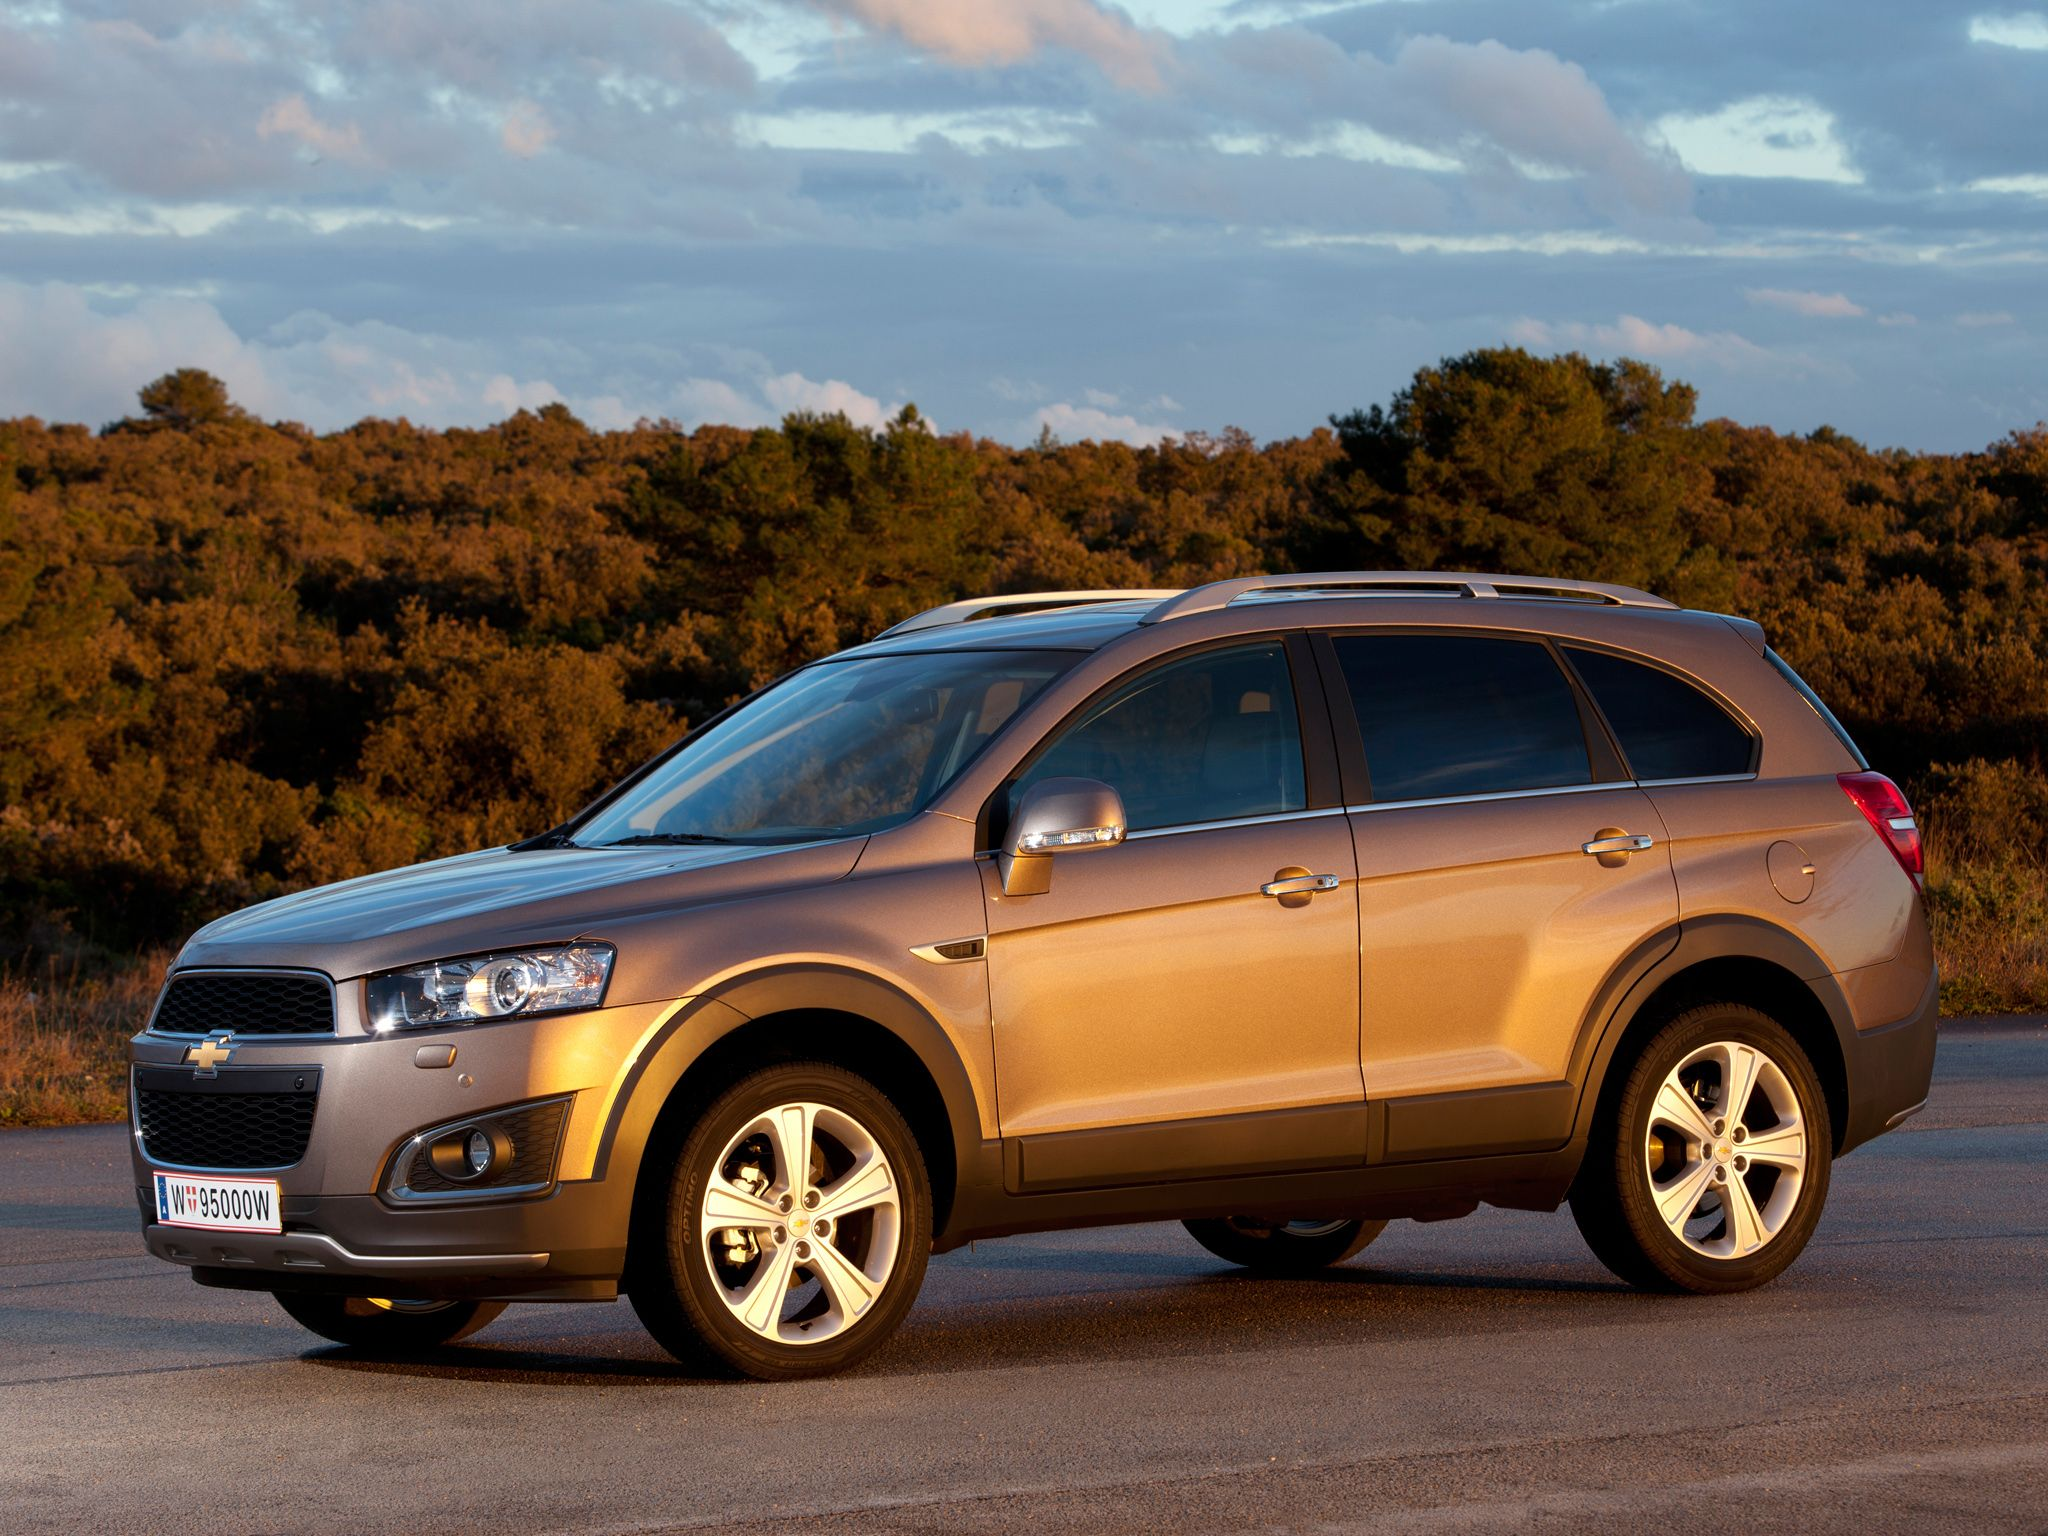 2013 Chevrolet Captiva: The Most Famous Chevy | Auto Reviews U0026 Gallery